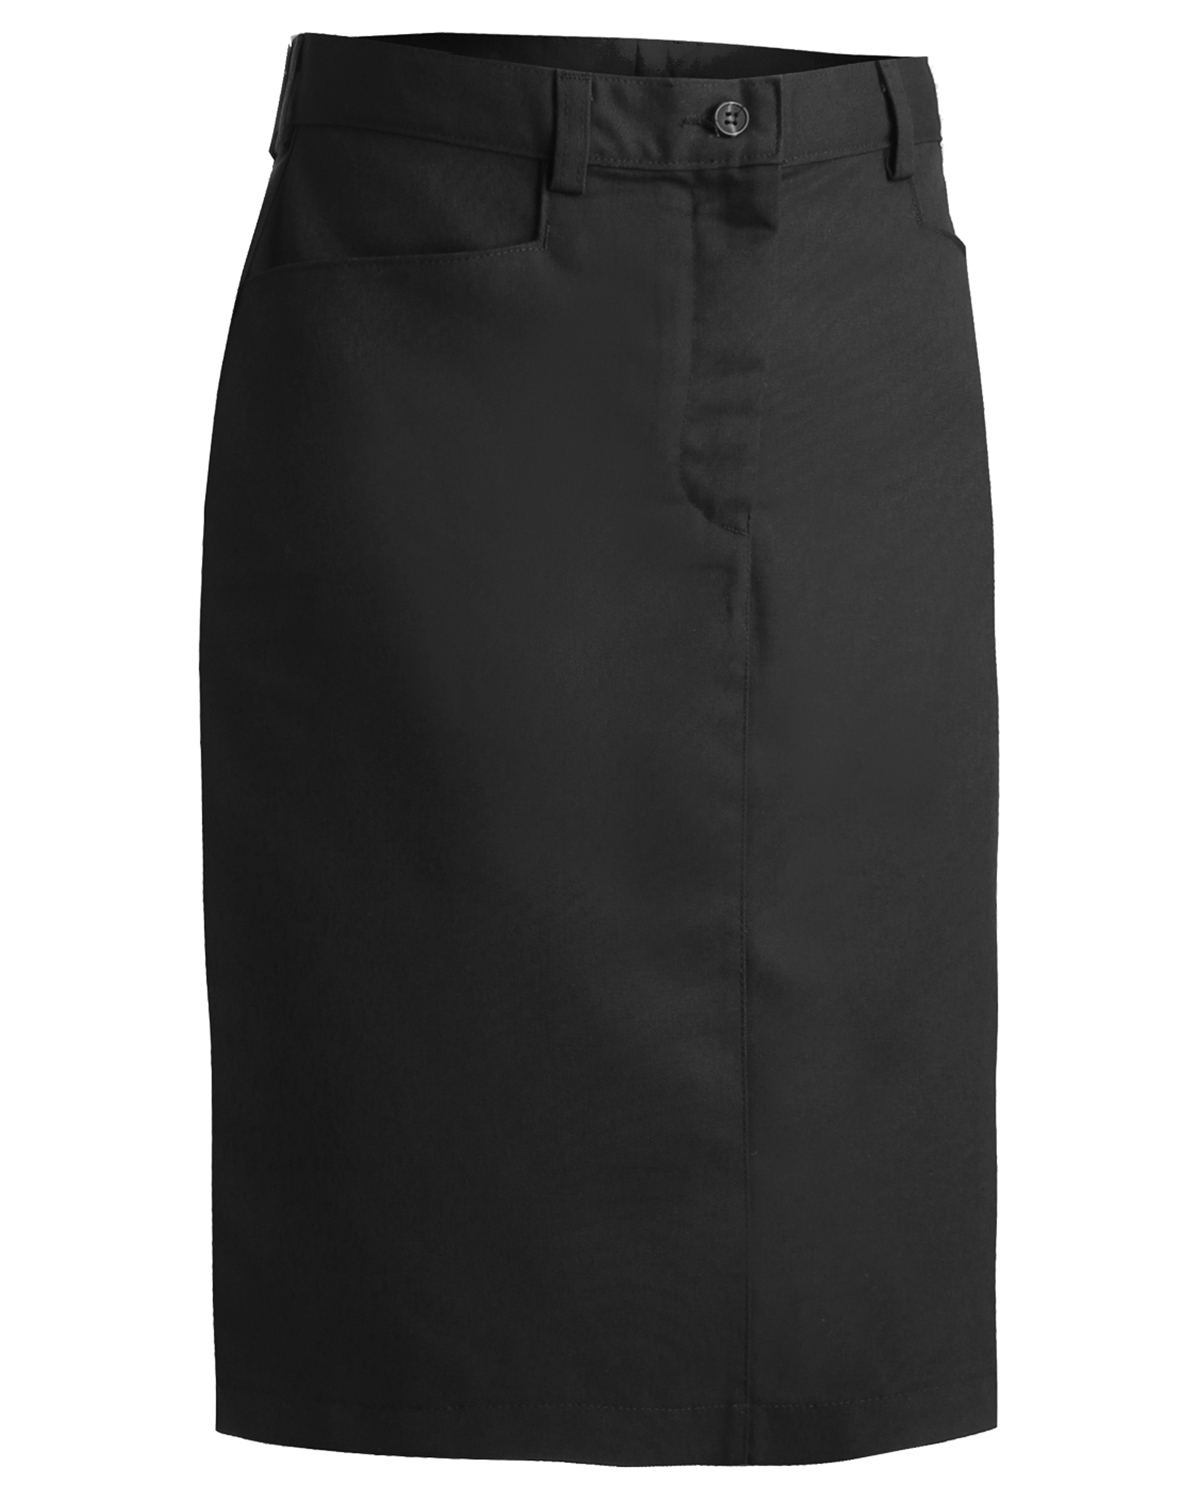 Edwards 9711 Women's Casual Chino Skirt at GotApparel